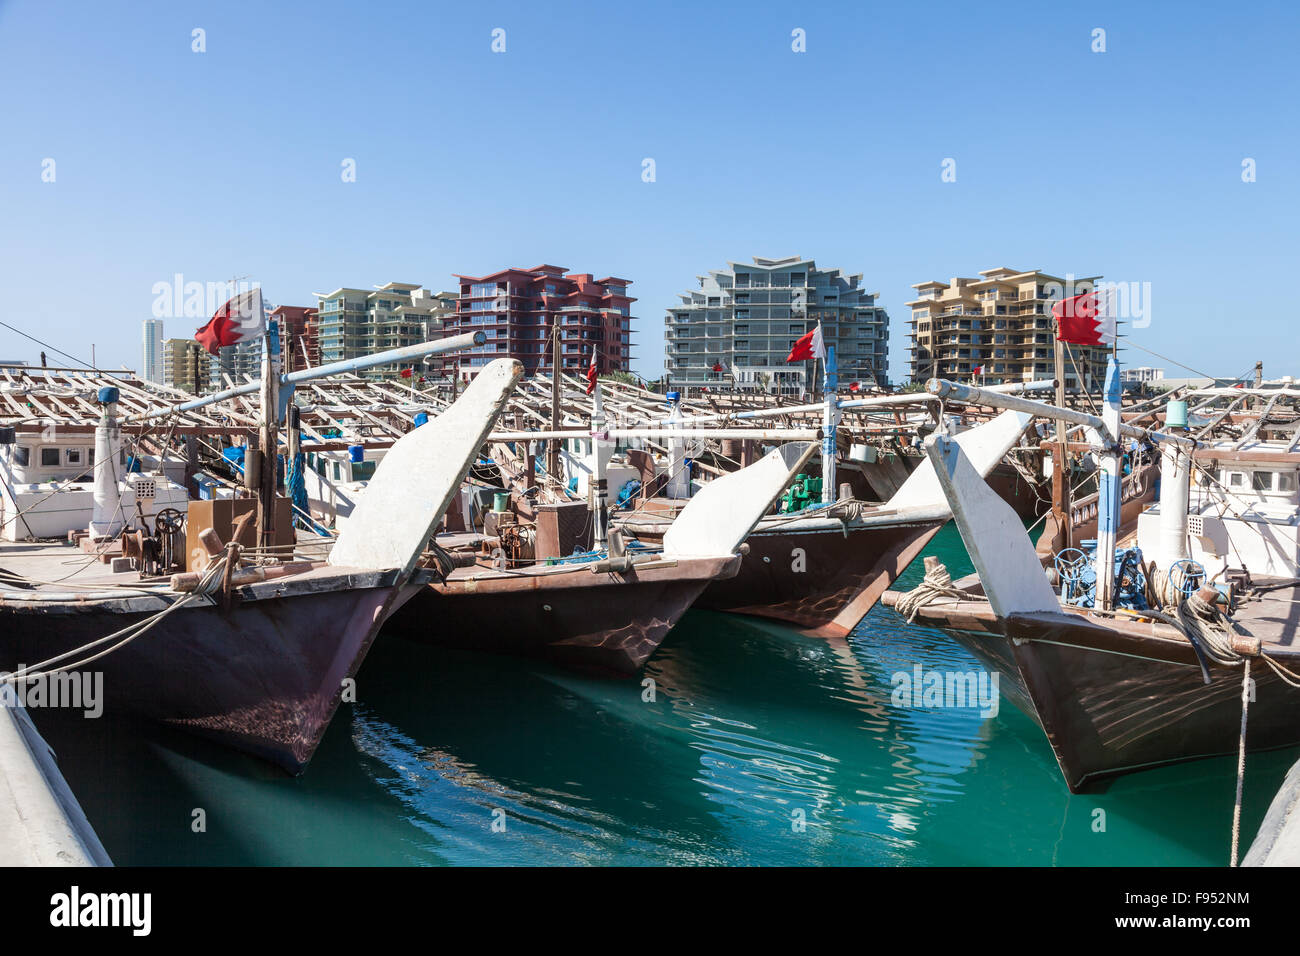 Dhow harbor in Manama, Bahrain - Stock Image